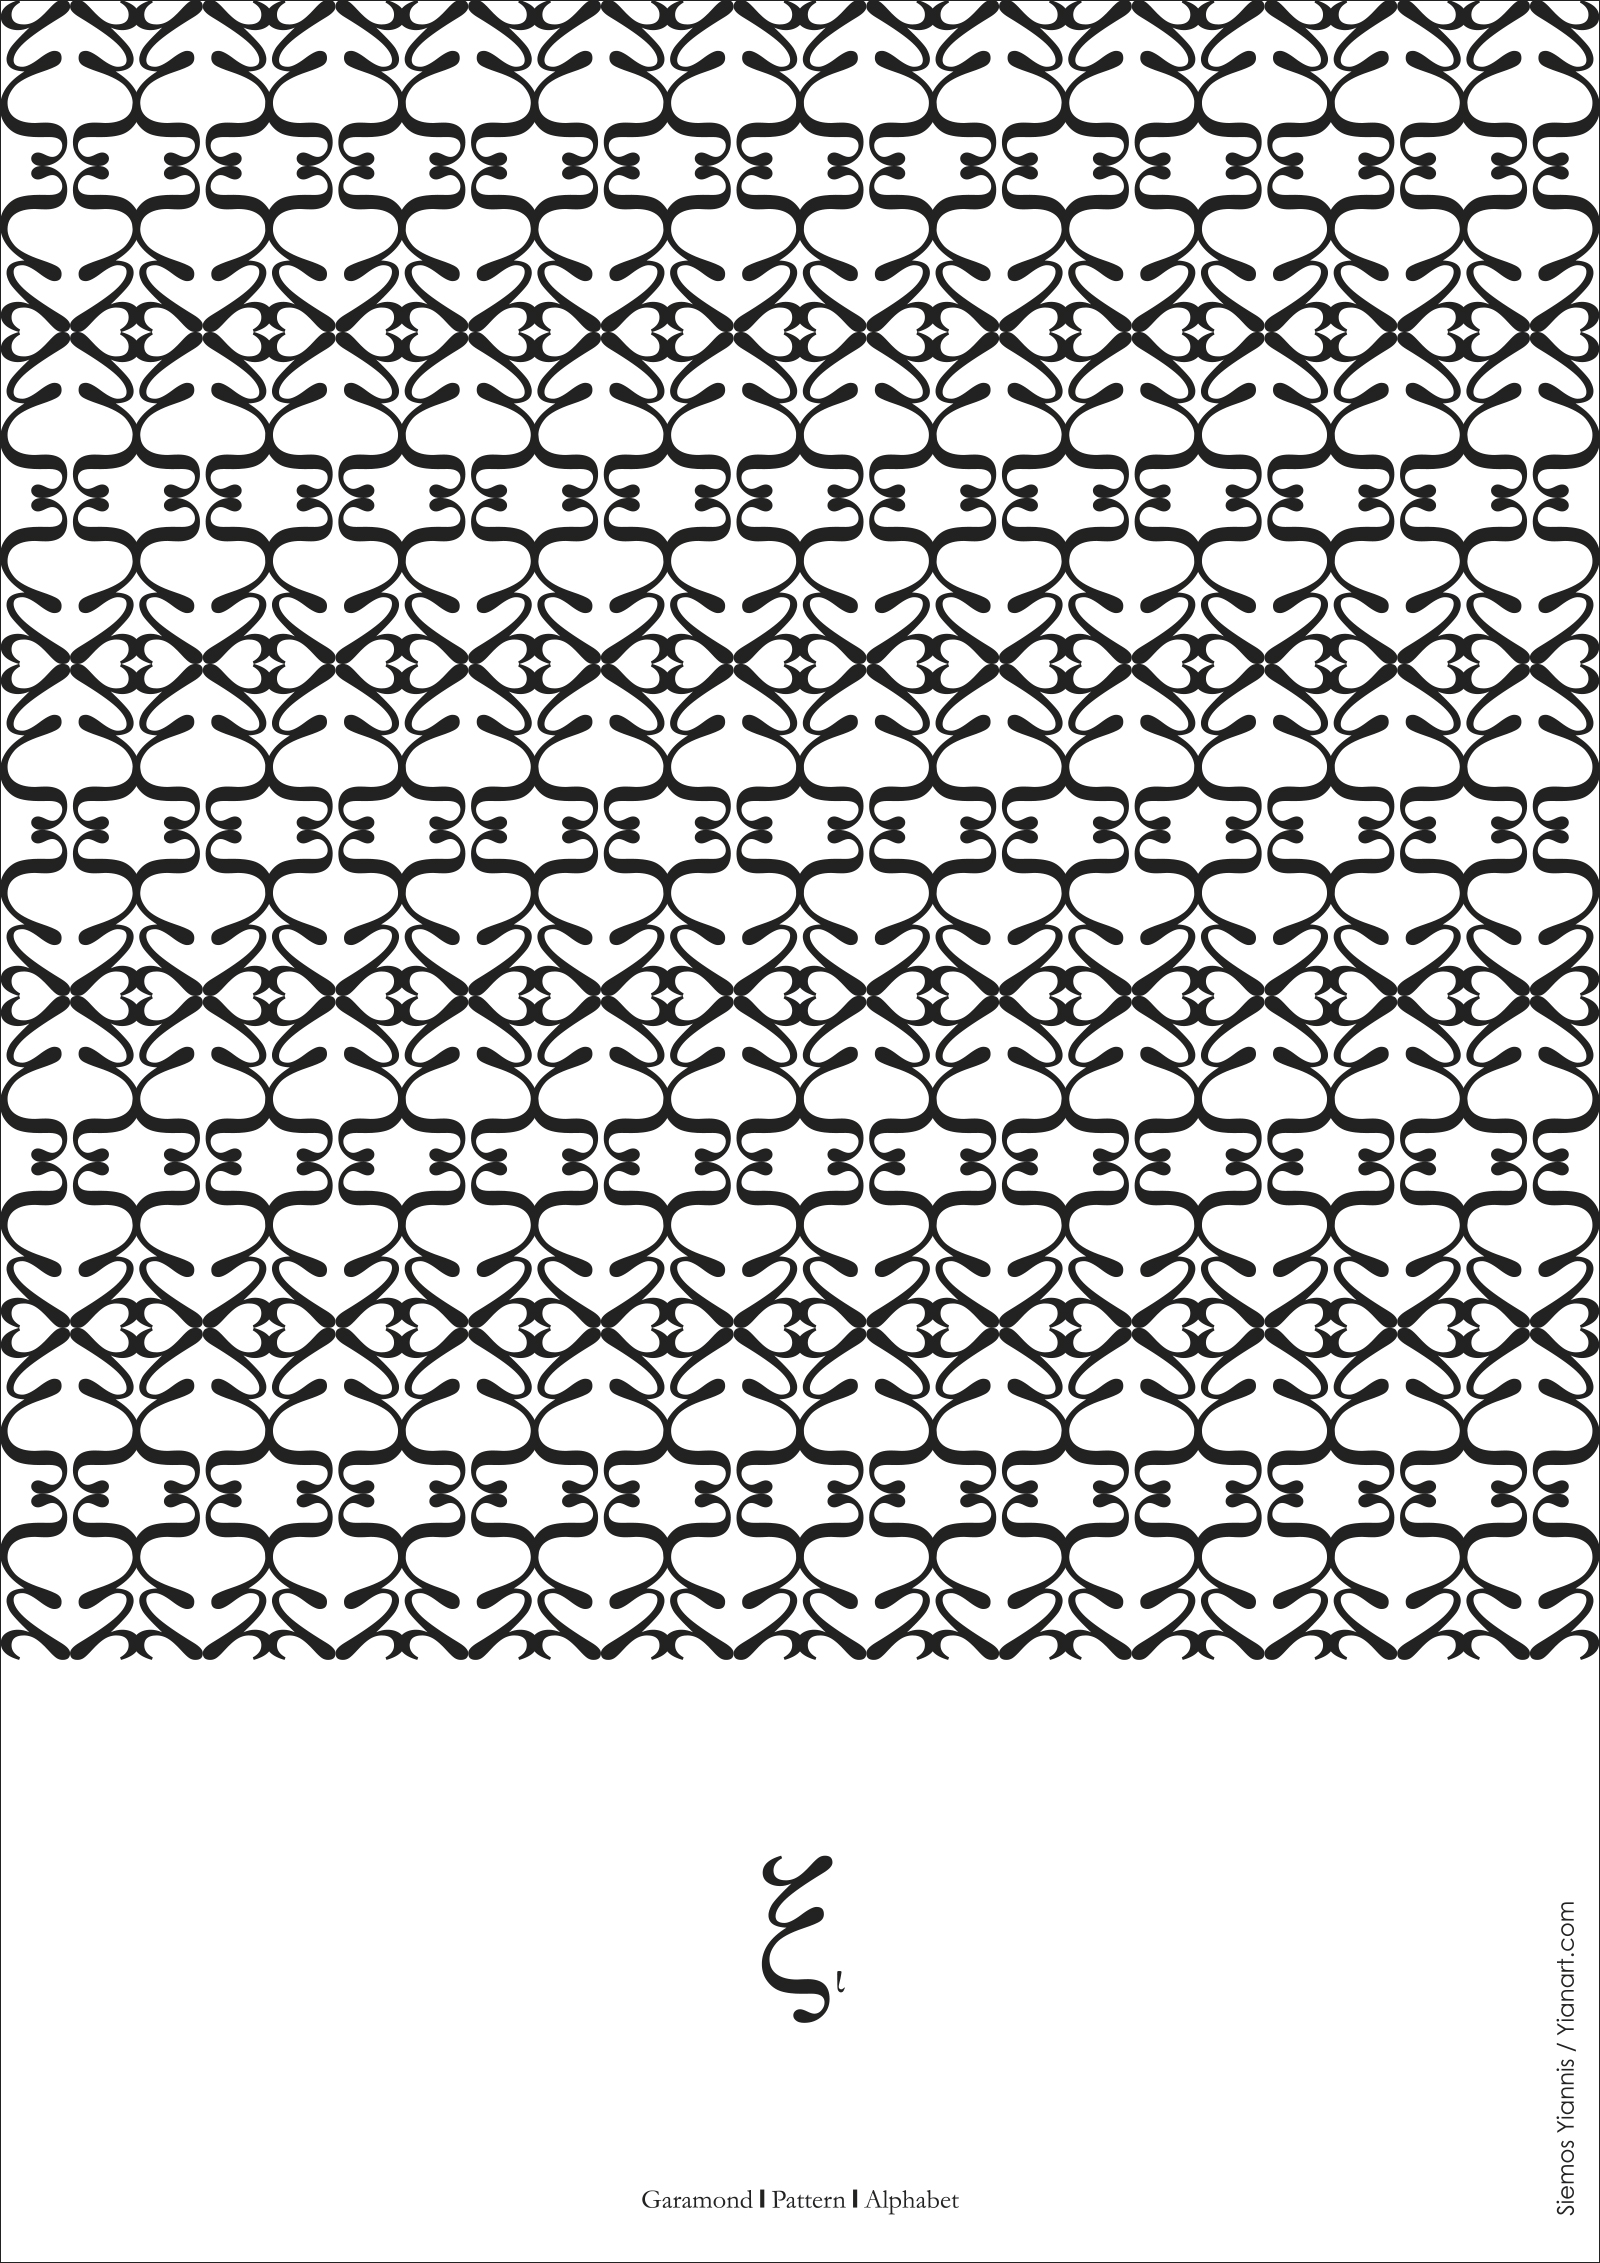 Greek Fonts Patterns_Xi2_Yianart